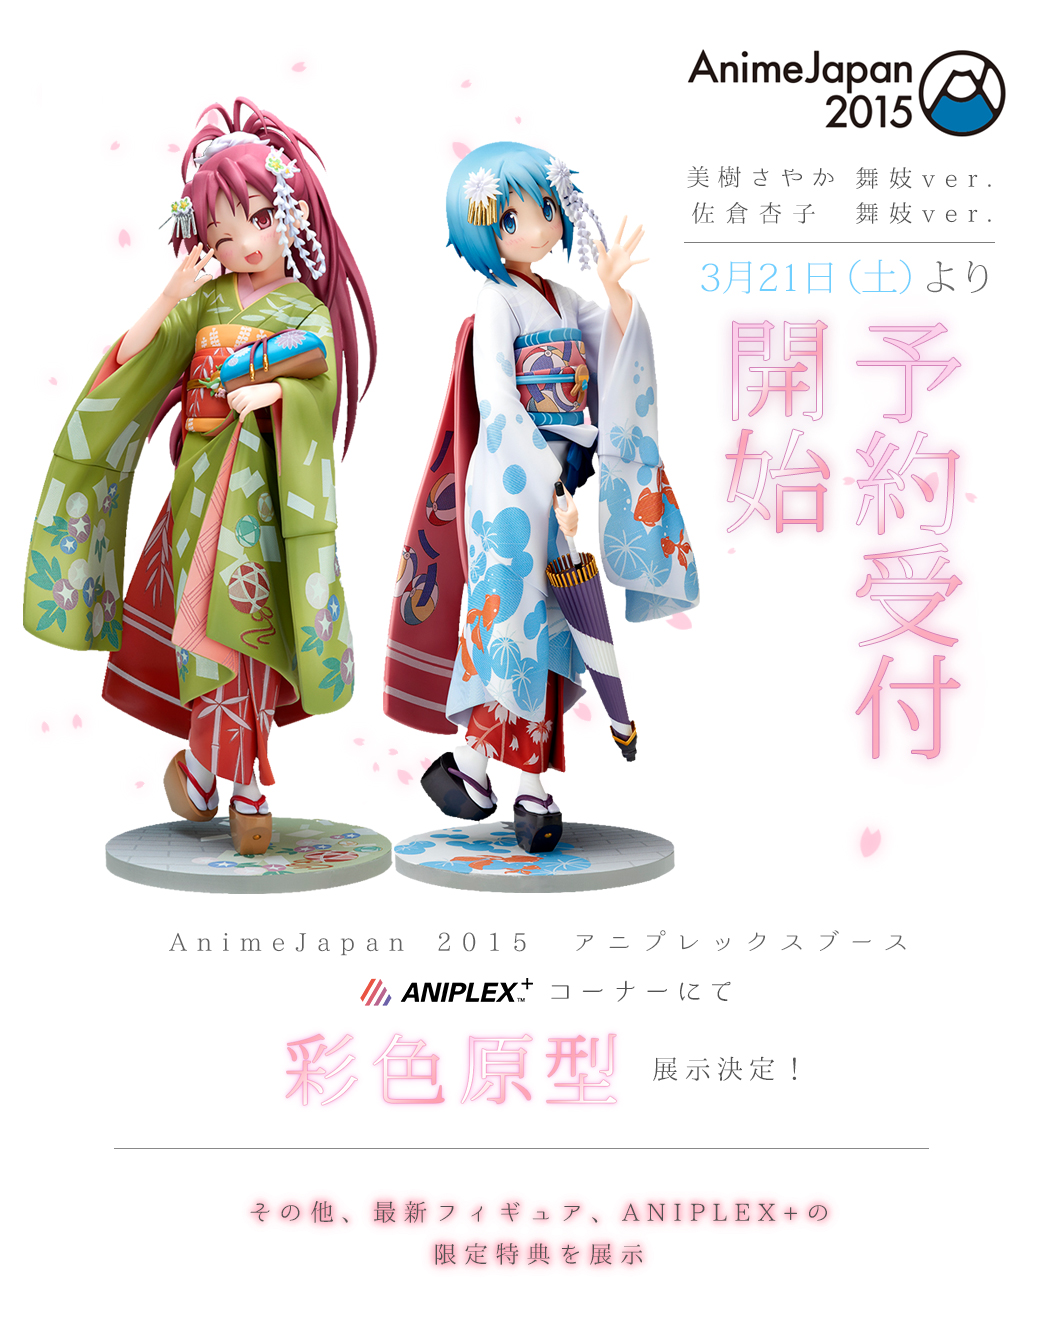 Stronger and Aniplex Release New Figures of Kyouko and Sayaka Holding Hands 10